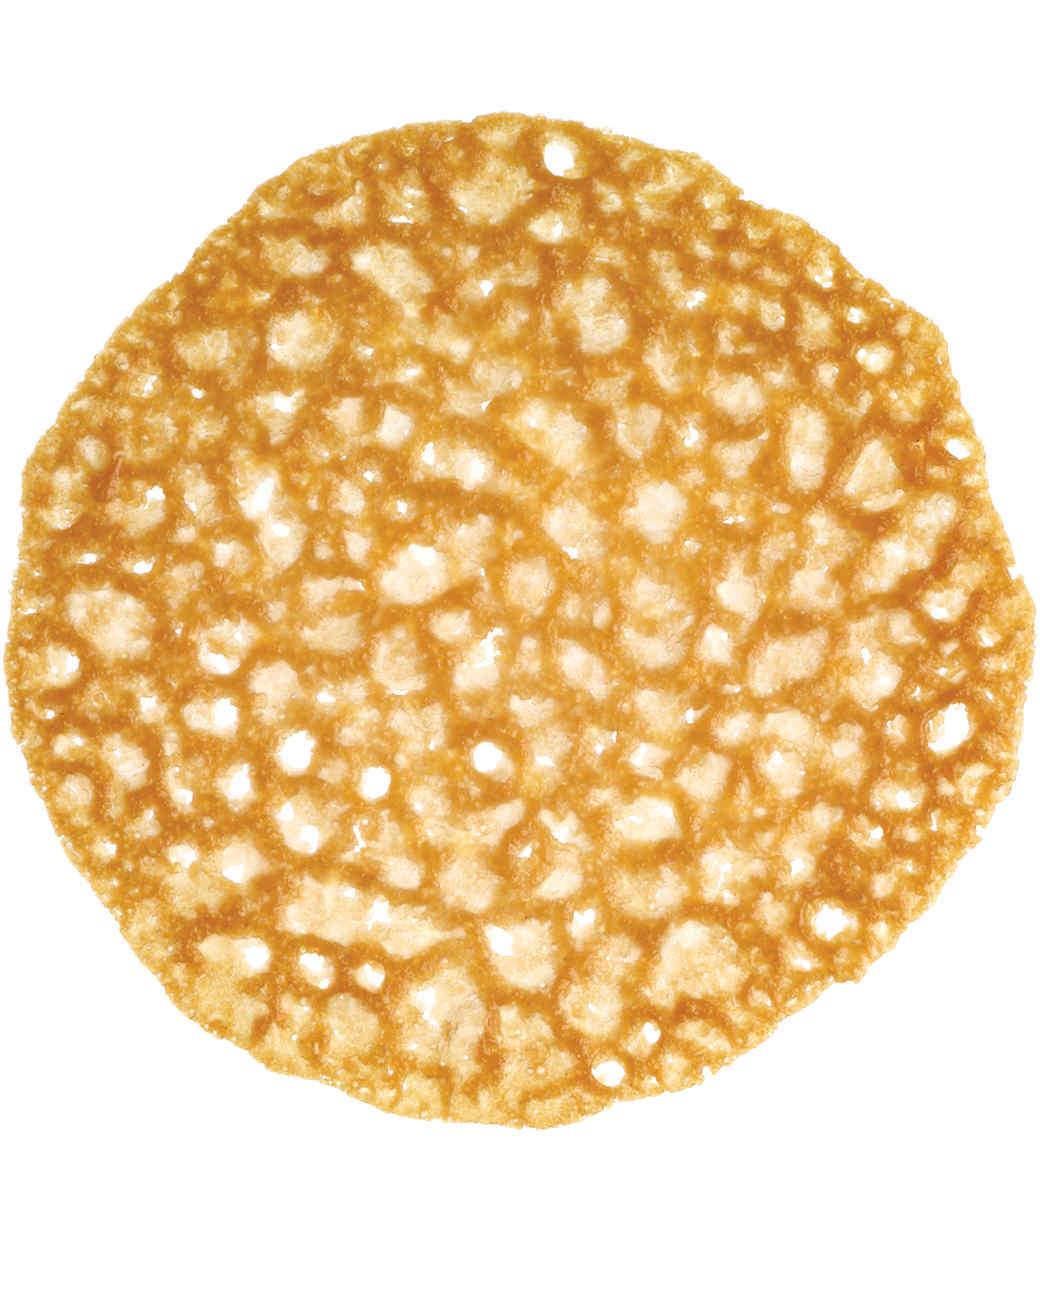 honey-lace-cookies-hol05-mld101477.jpg